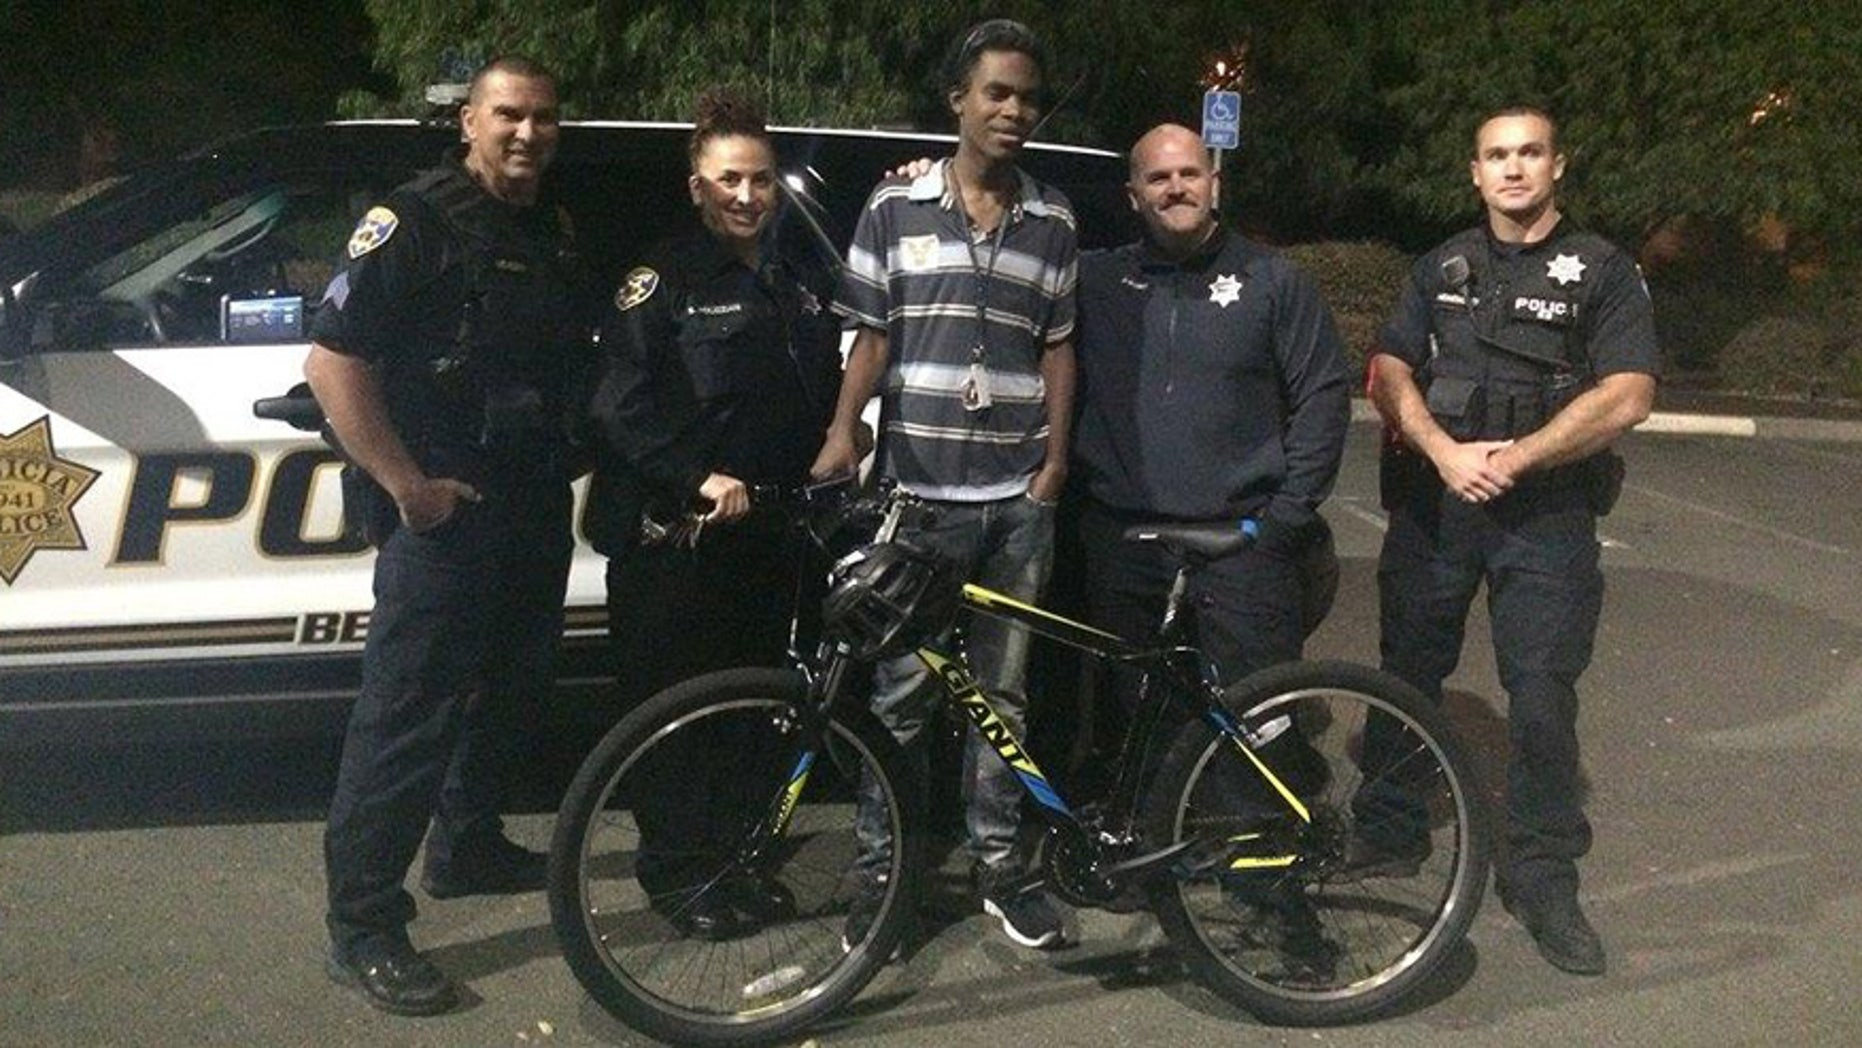 Benicia, Calif., police officers surprise Jourdan Duncan with a bike after finding out he walked more than seven miles to and from work.